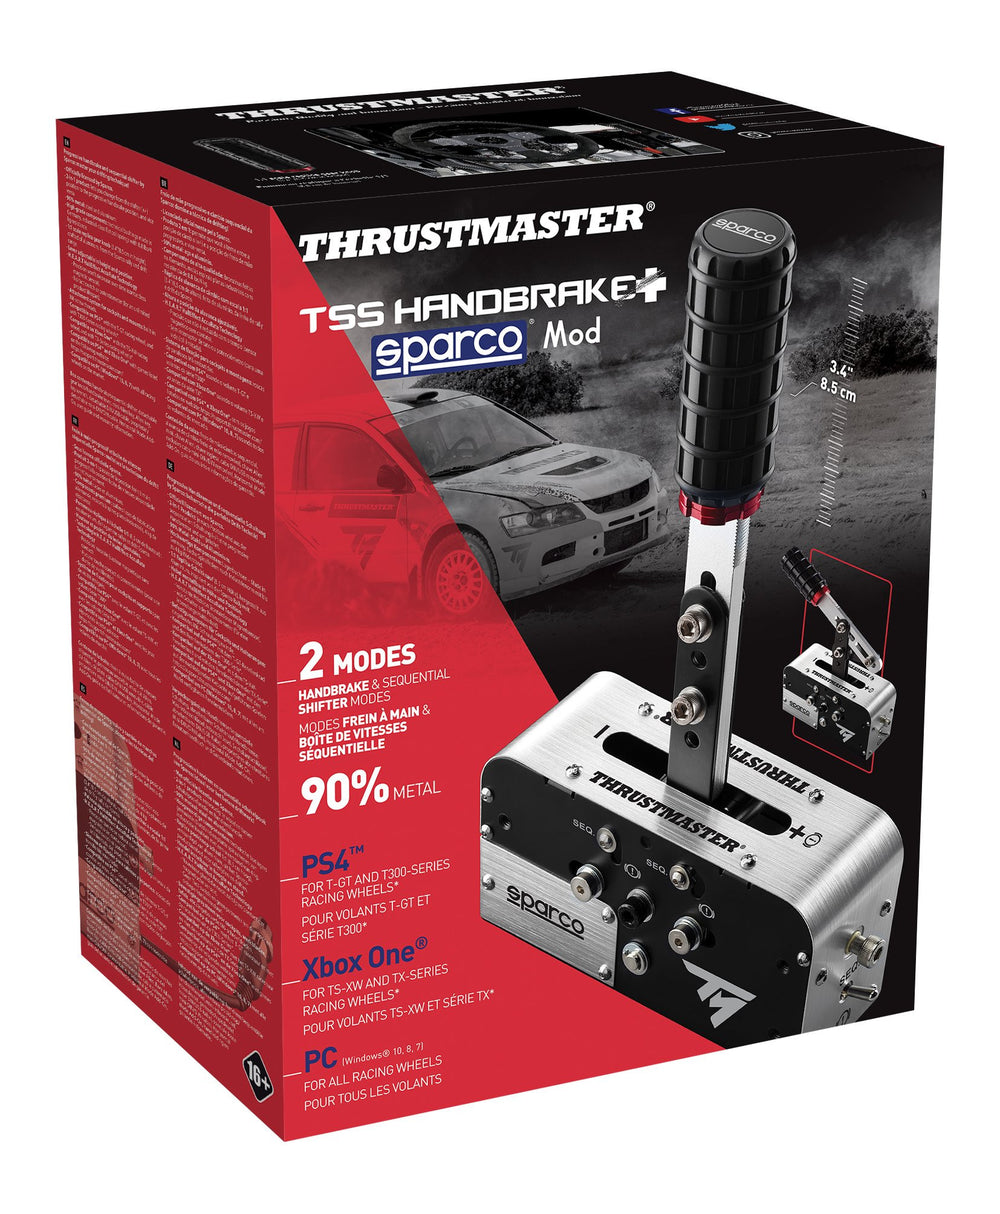 Thrustmaster TSS Handbrake Sparco Mod + Handbrake and Sequential Shifter PS4 and Xbox One - Packaging